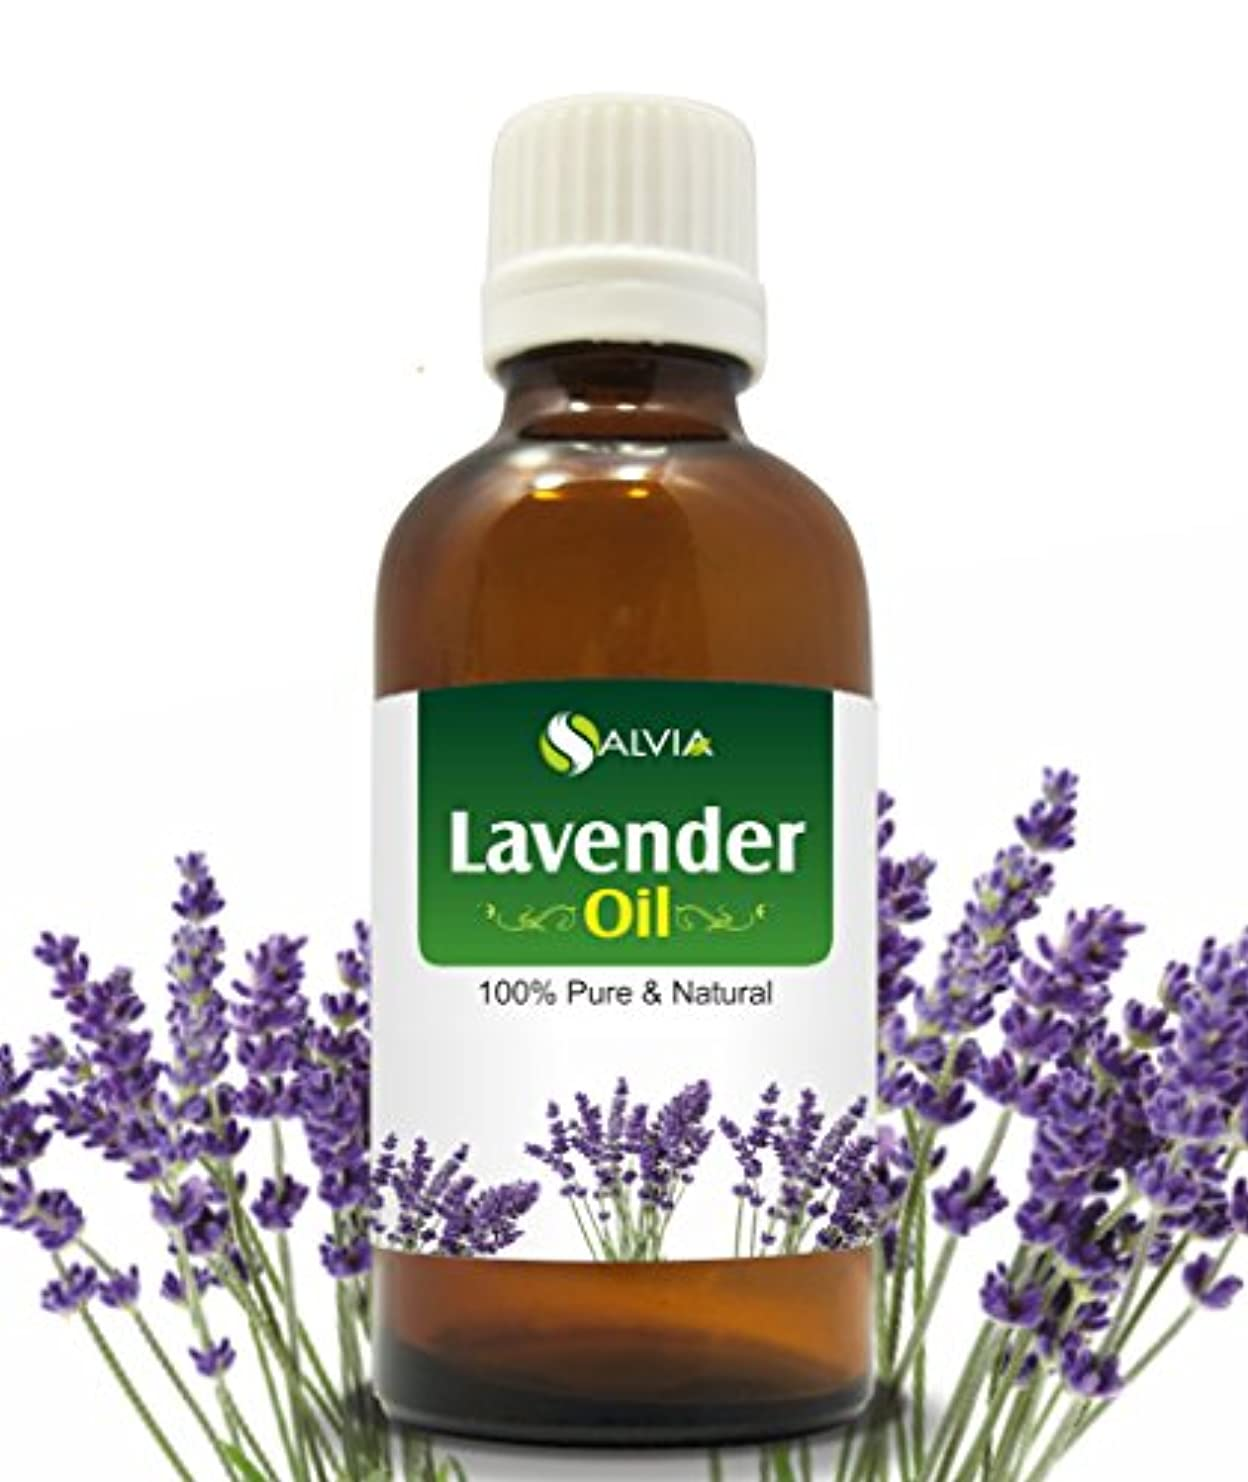 汚すピンチ残りLAVENDER OIL 100% NATURAL PURE UNDILUTED UNCUT ESSENTIAL OIL 15ML